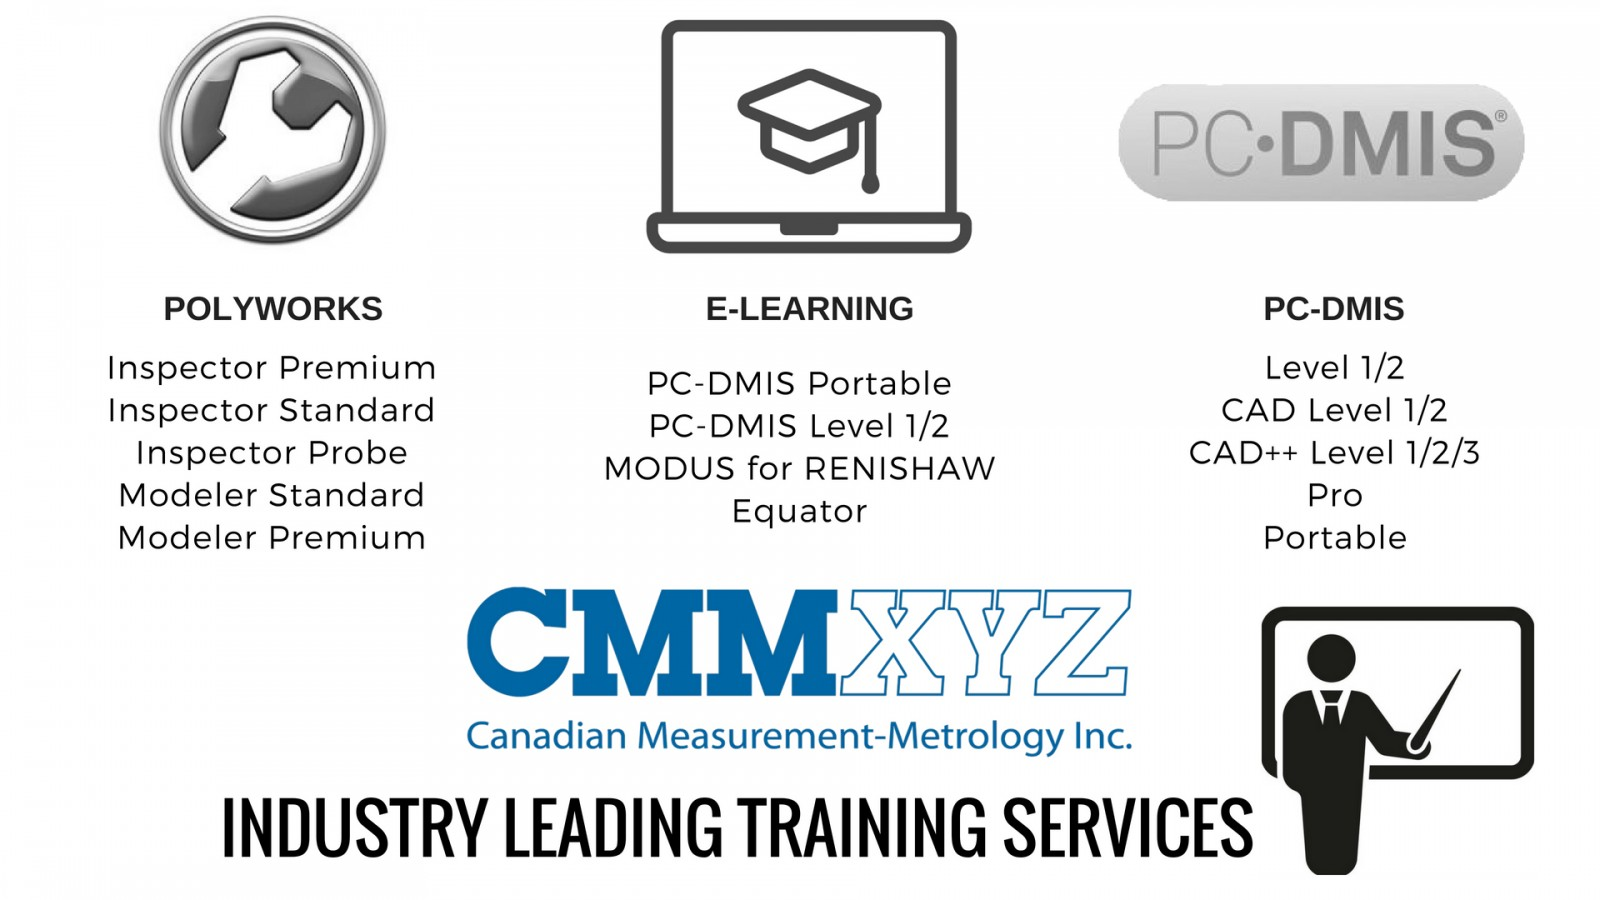 CMMXYZ Training Services including Polyworks, PC-DMIS, CAD, MODUS and E-Learning